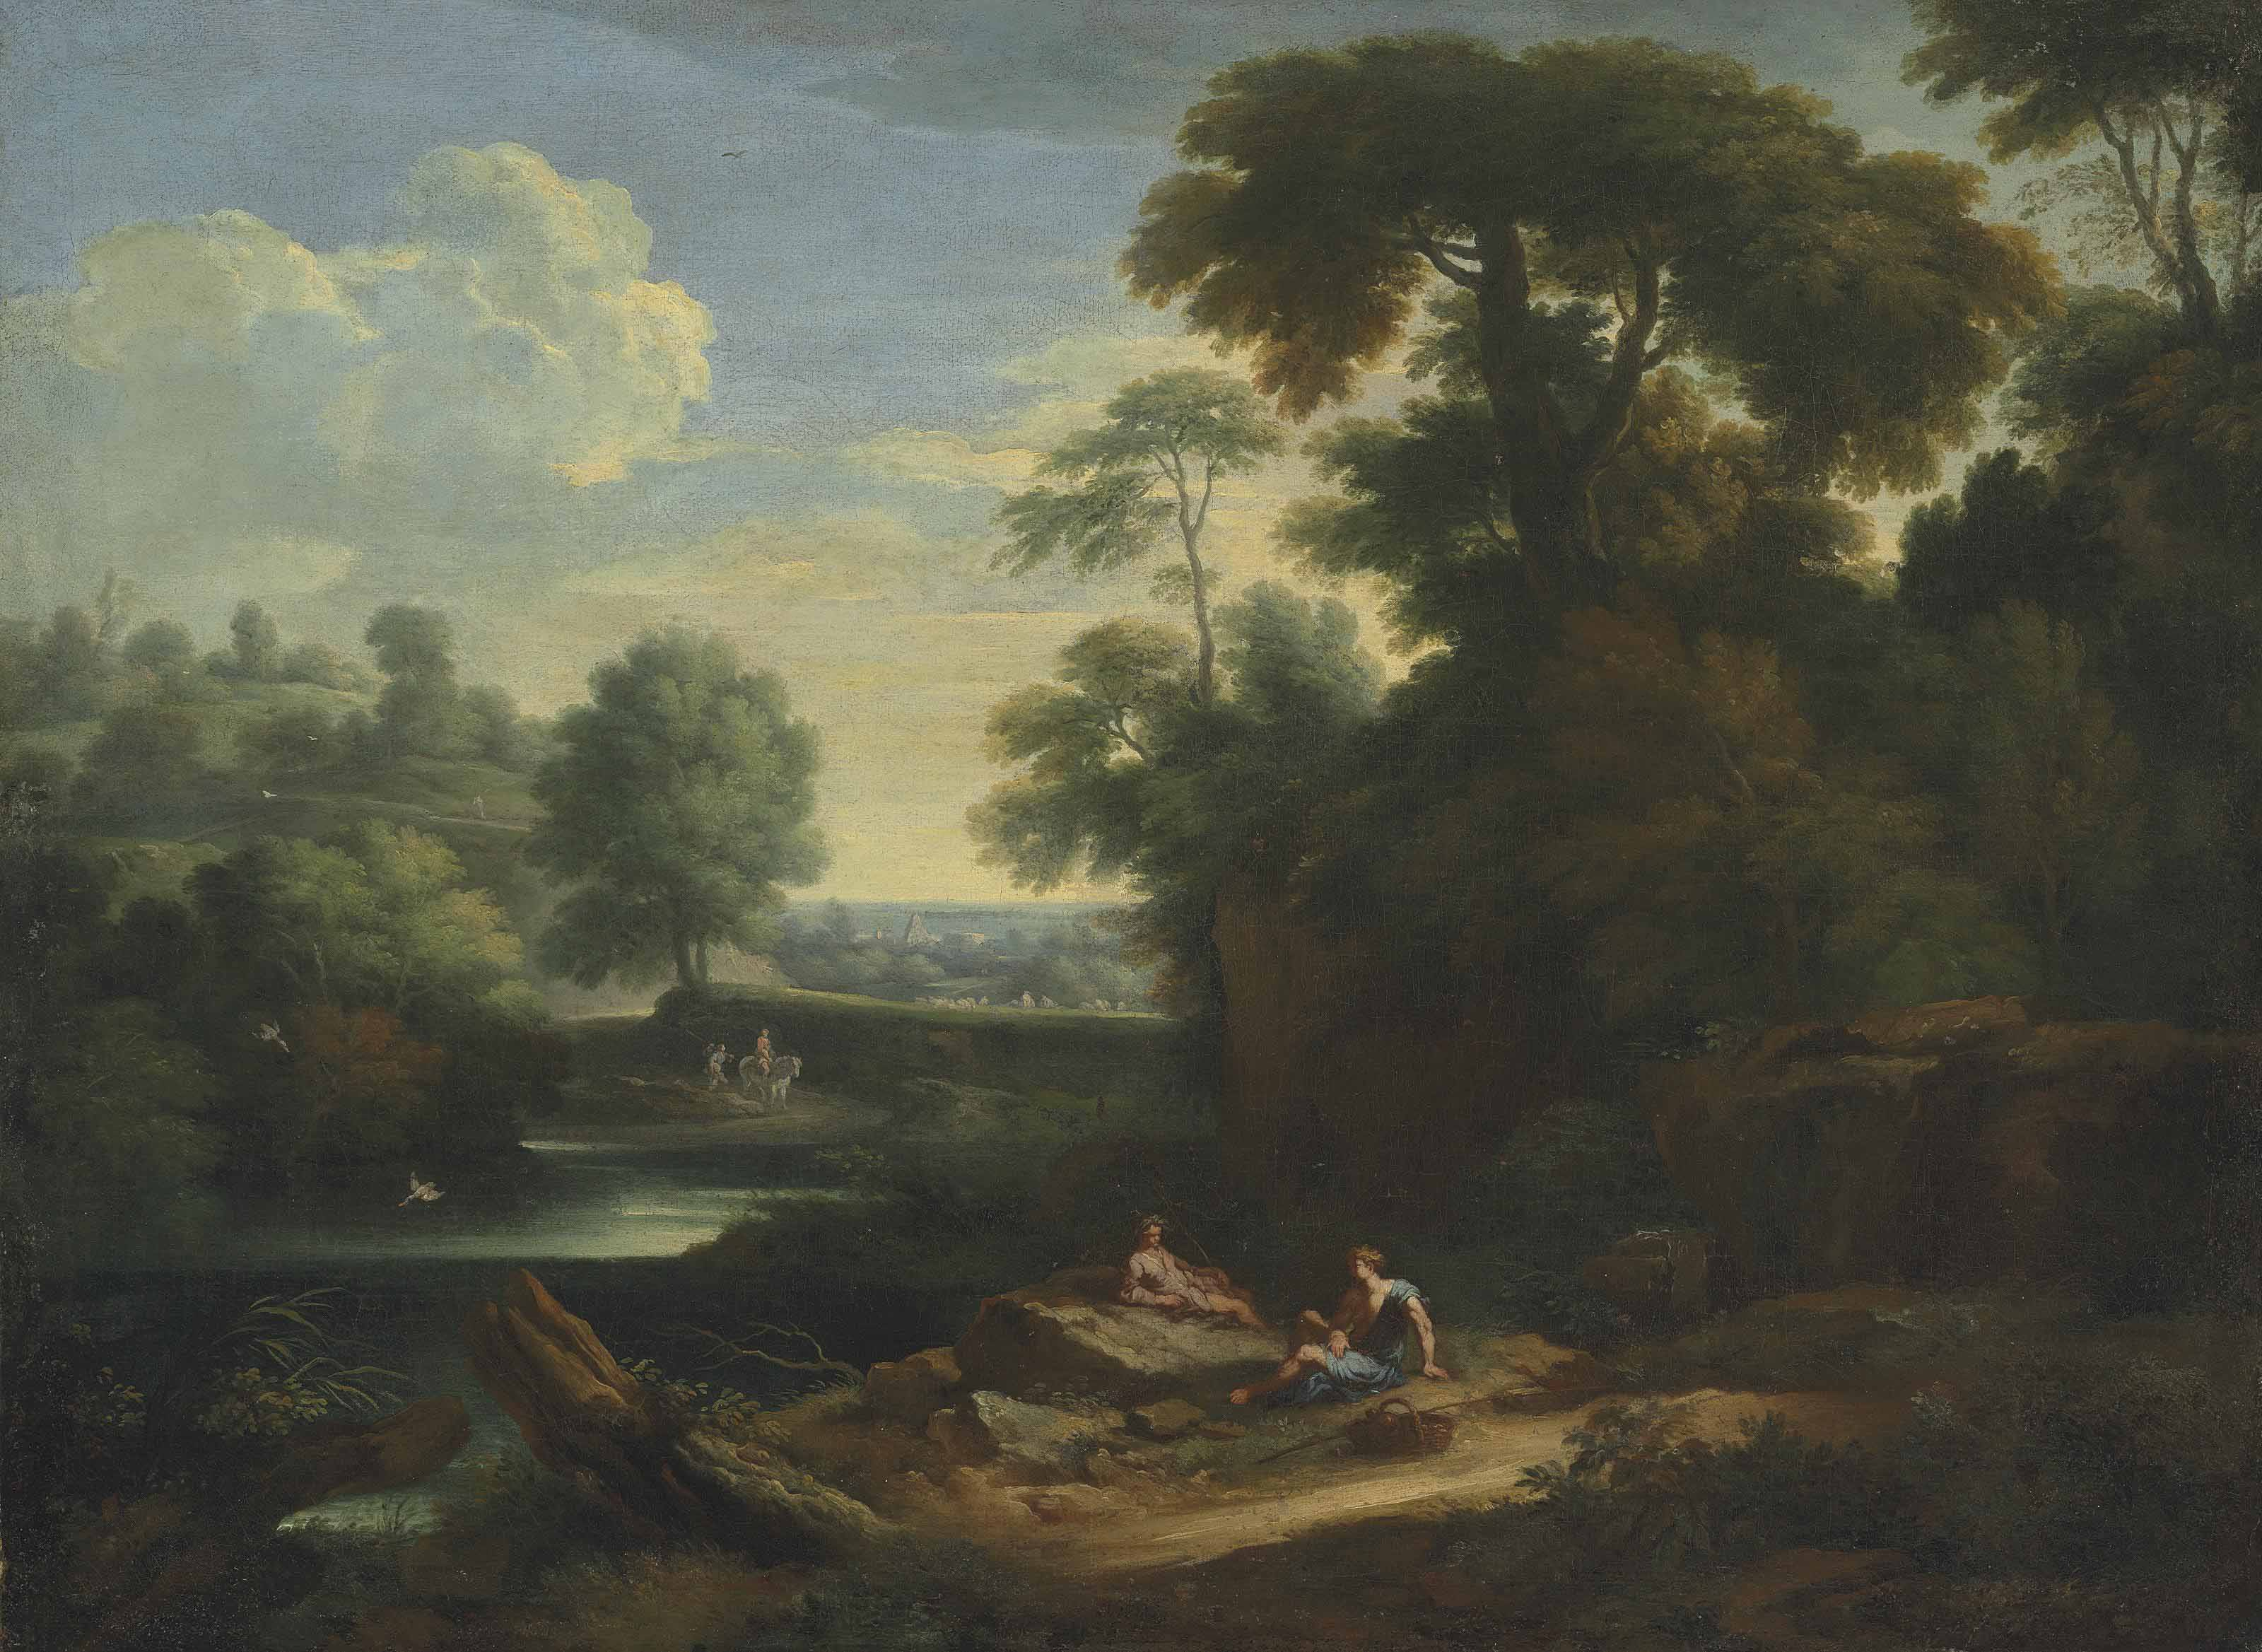 An Italianate wooded landscape with Arcadian figures resting beside a lake, the Pyramid of Cestius beyond